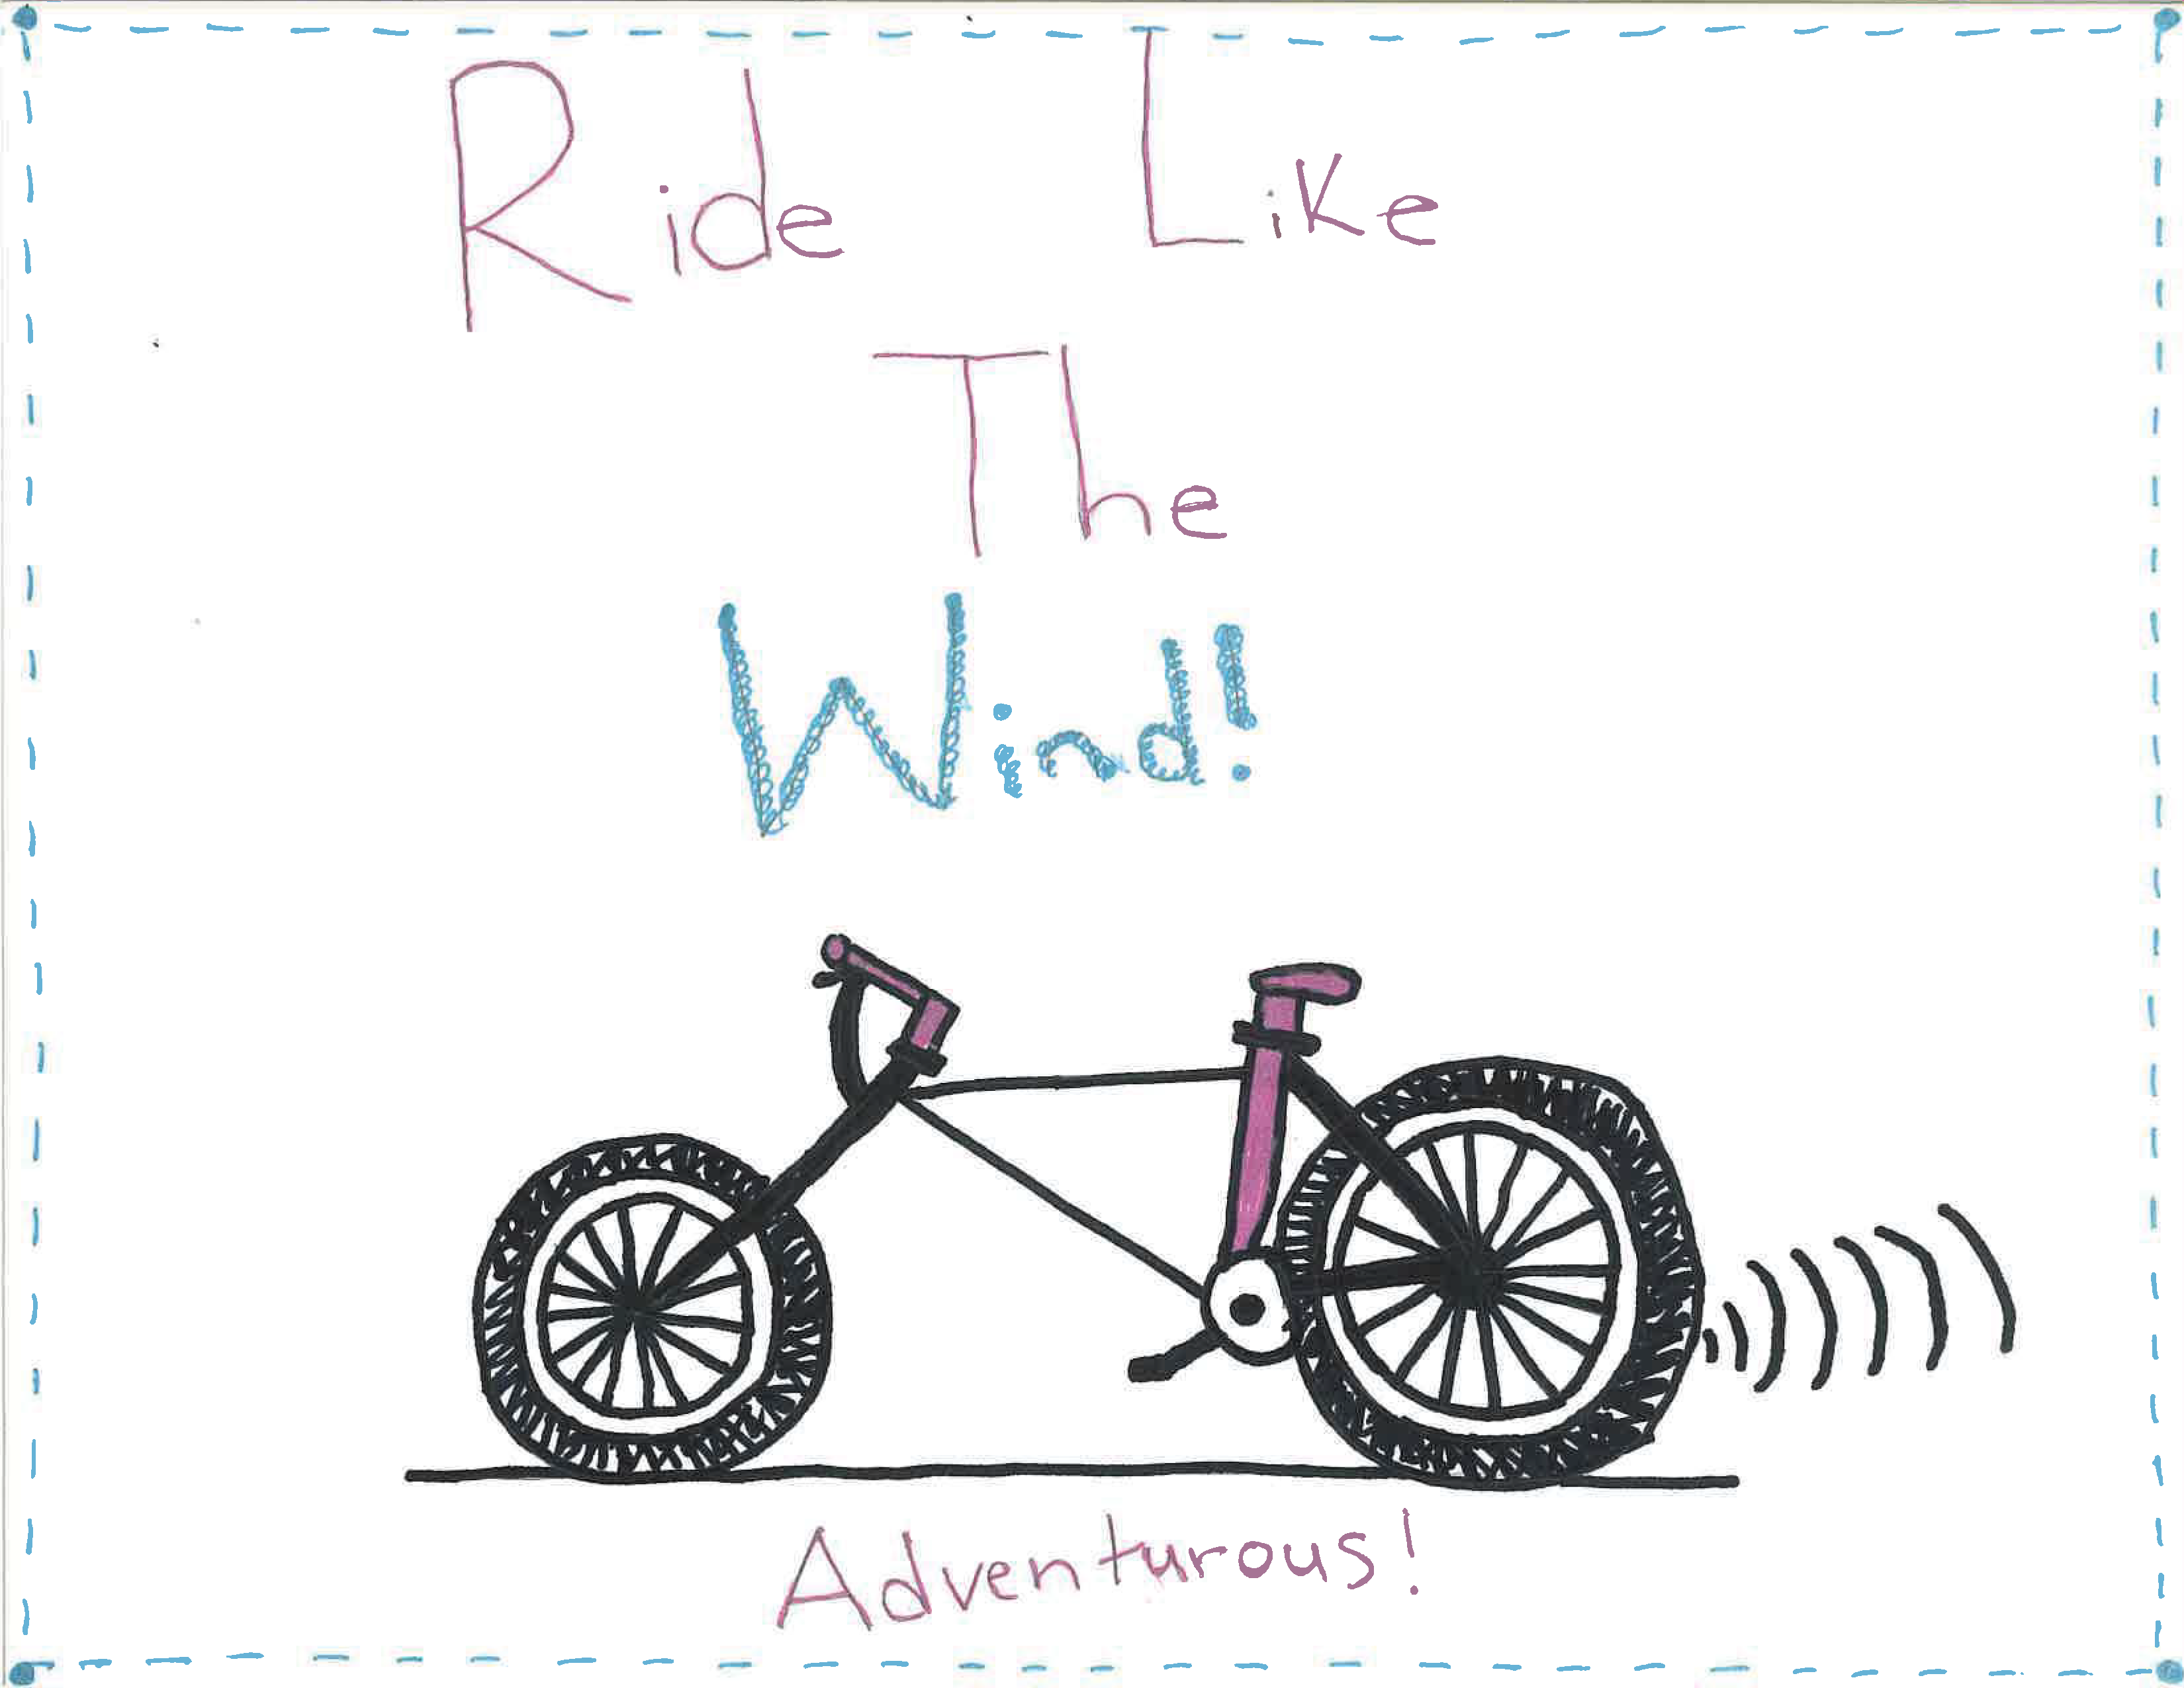 image of adventure bicycle